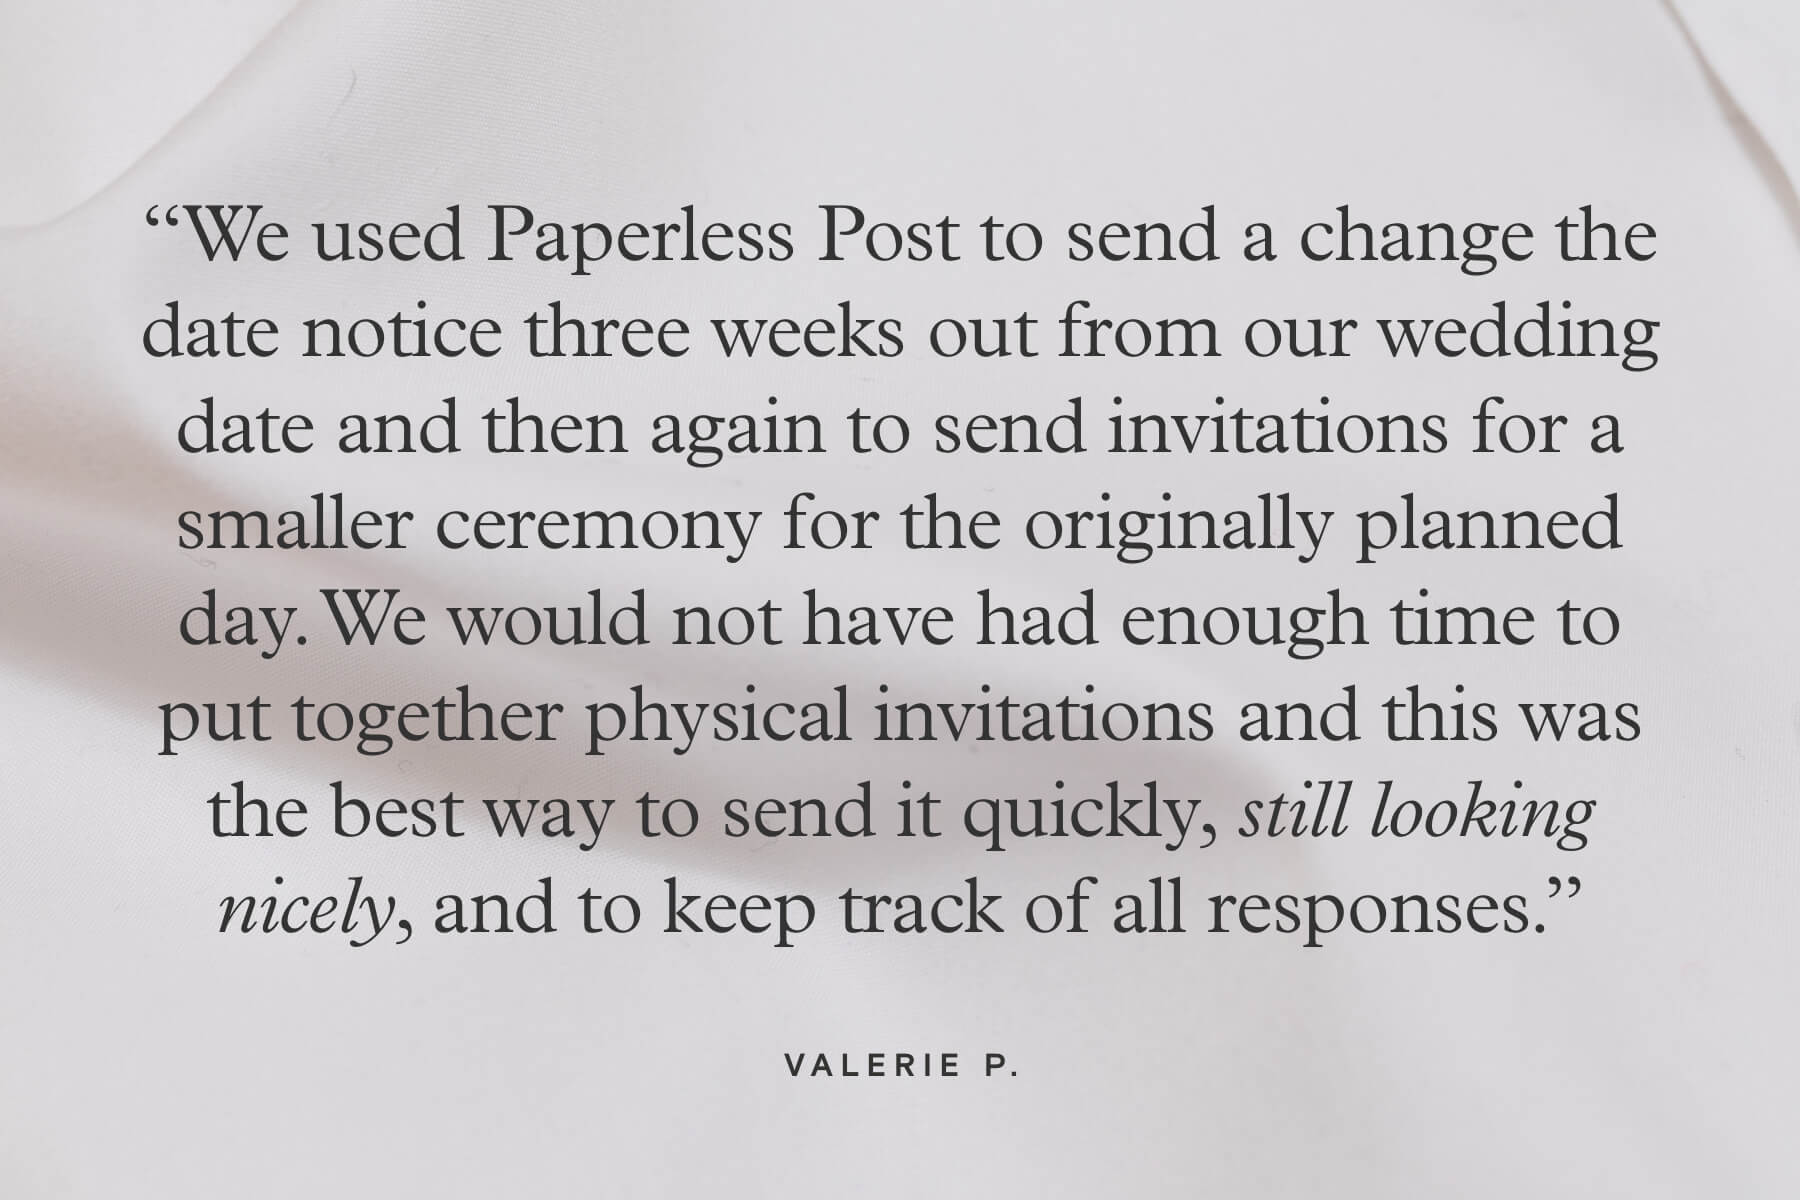 """We used Paperless Post to send a change the date notice three weeks out from our wedding date and then again to send invitations for a smaller ceremony for the originally planned day. We would not have had enough time to put together physical invitations and this was the best way to send it quickly, still looking nicely, and to keep track of all responses."" - Valerie P."